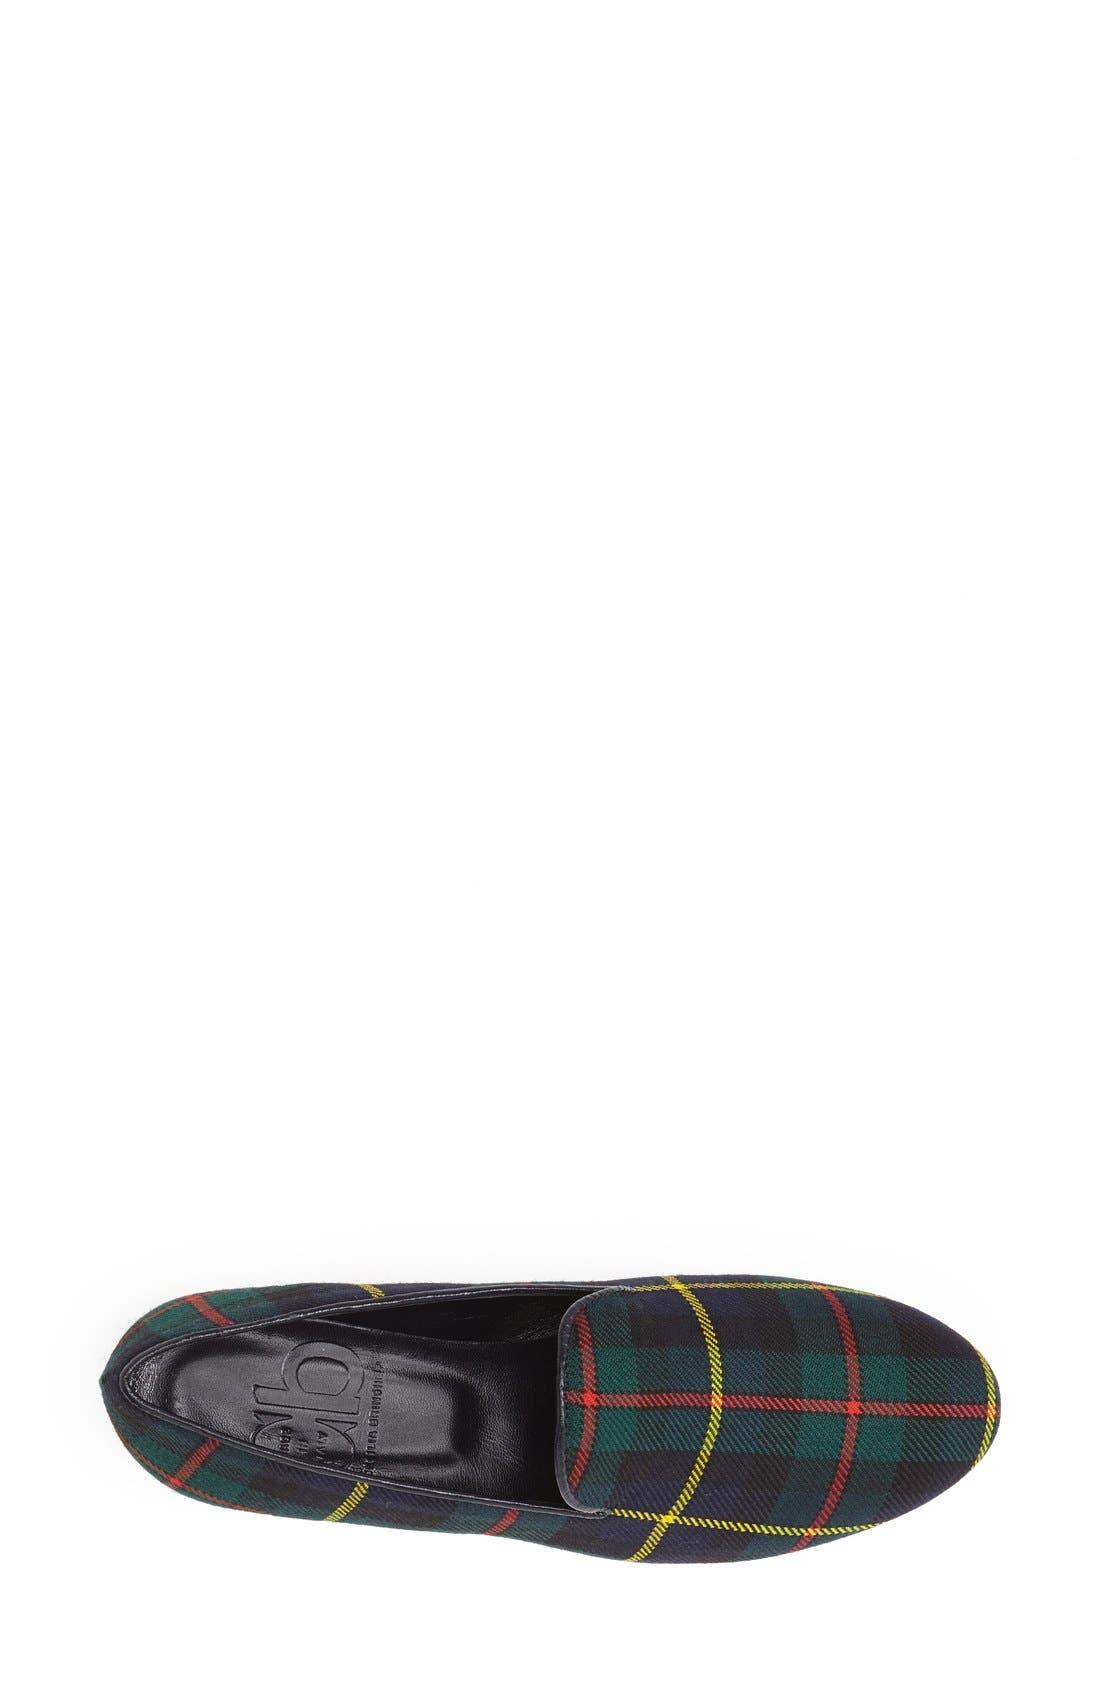 Alternate Image 3  - CB Made in Italy Plaid Smoking Loafer (Women)